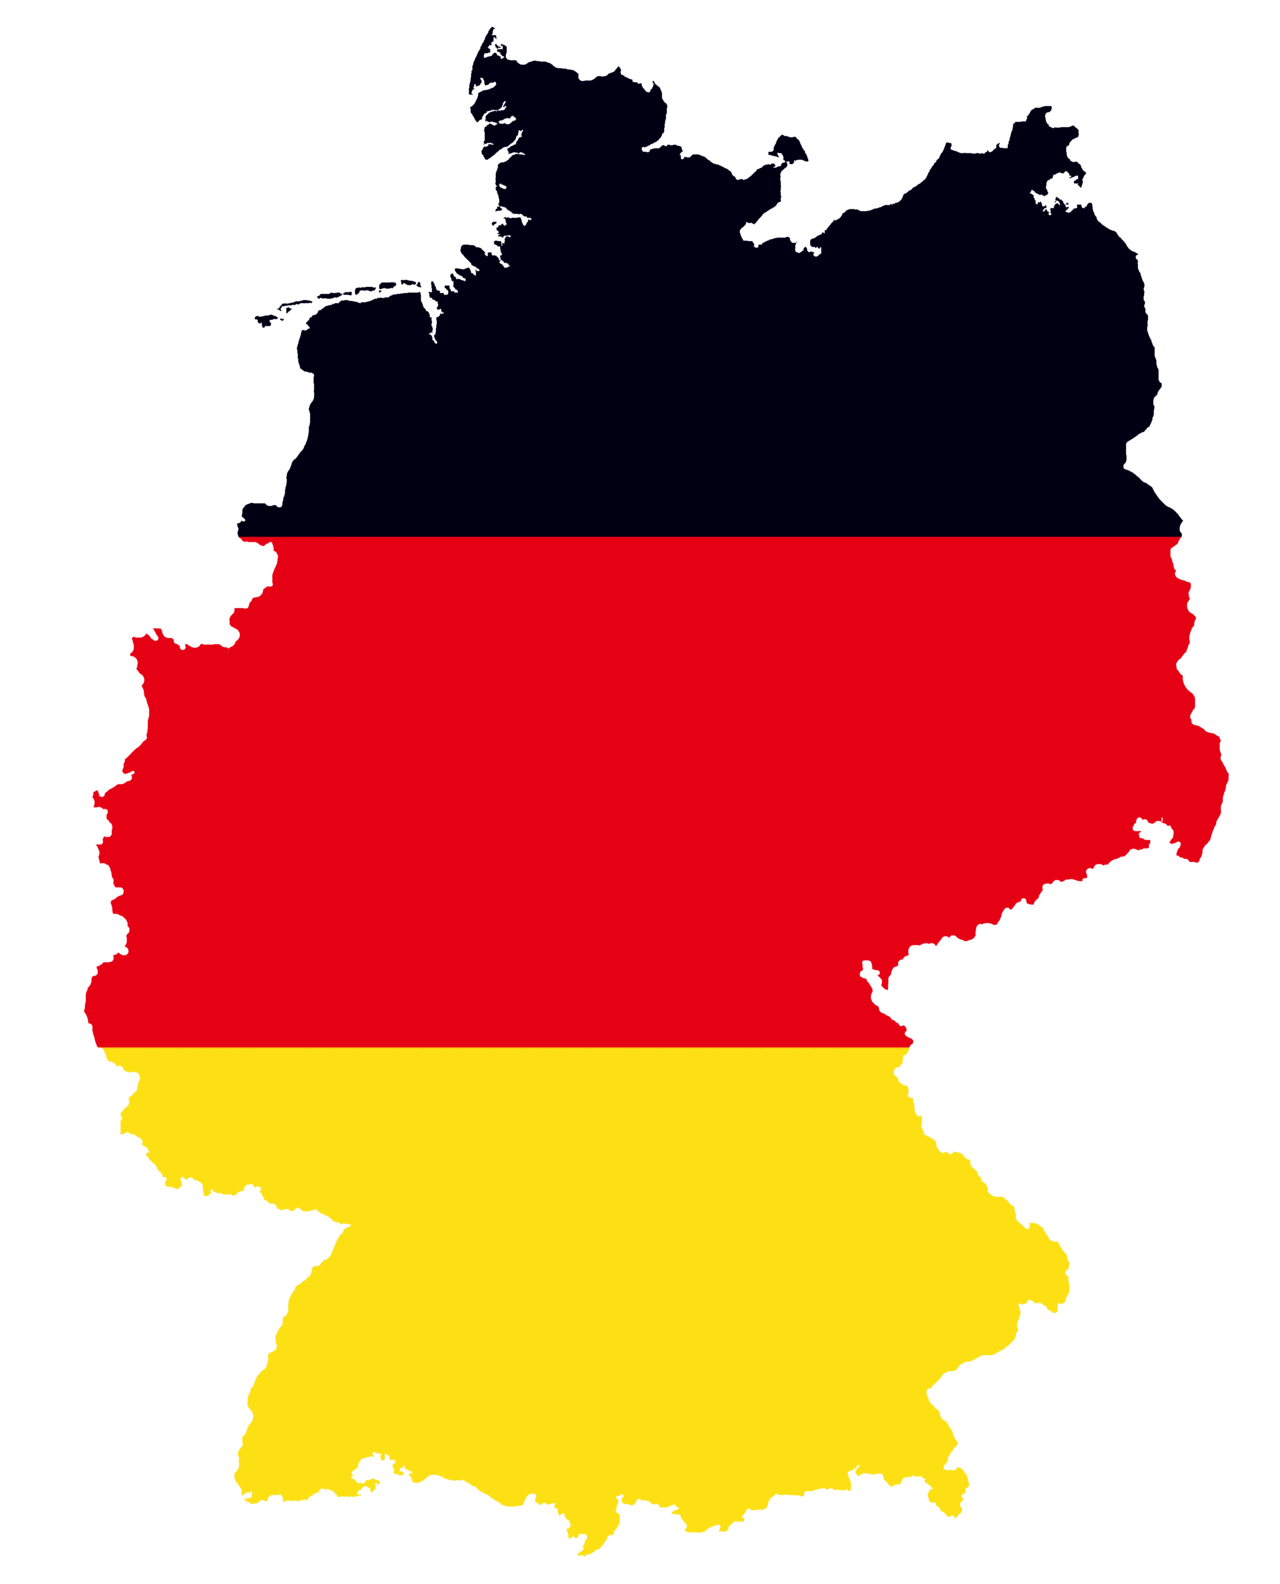 Germany Clipart & Germany Clip Art Images.